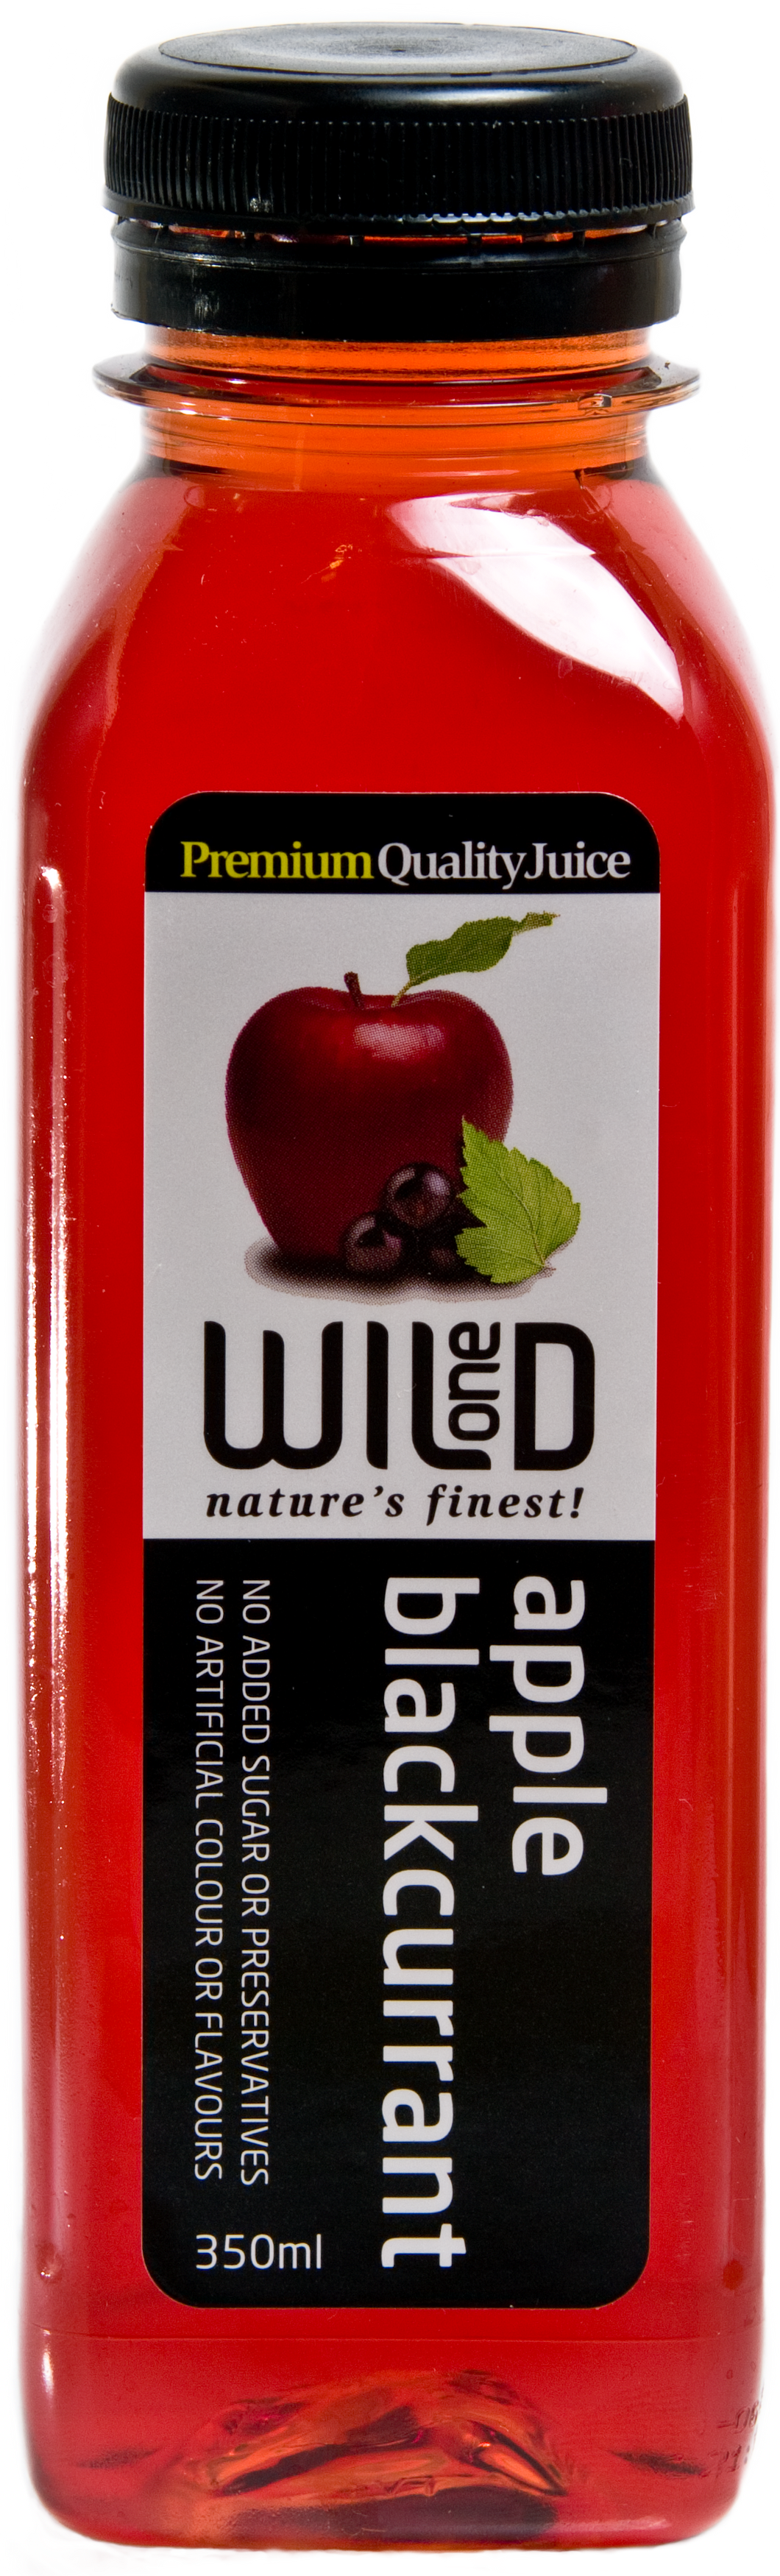 350ml (12) Apple & Blackcurrant Juice - Wild One